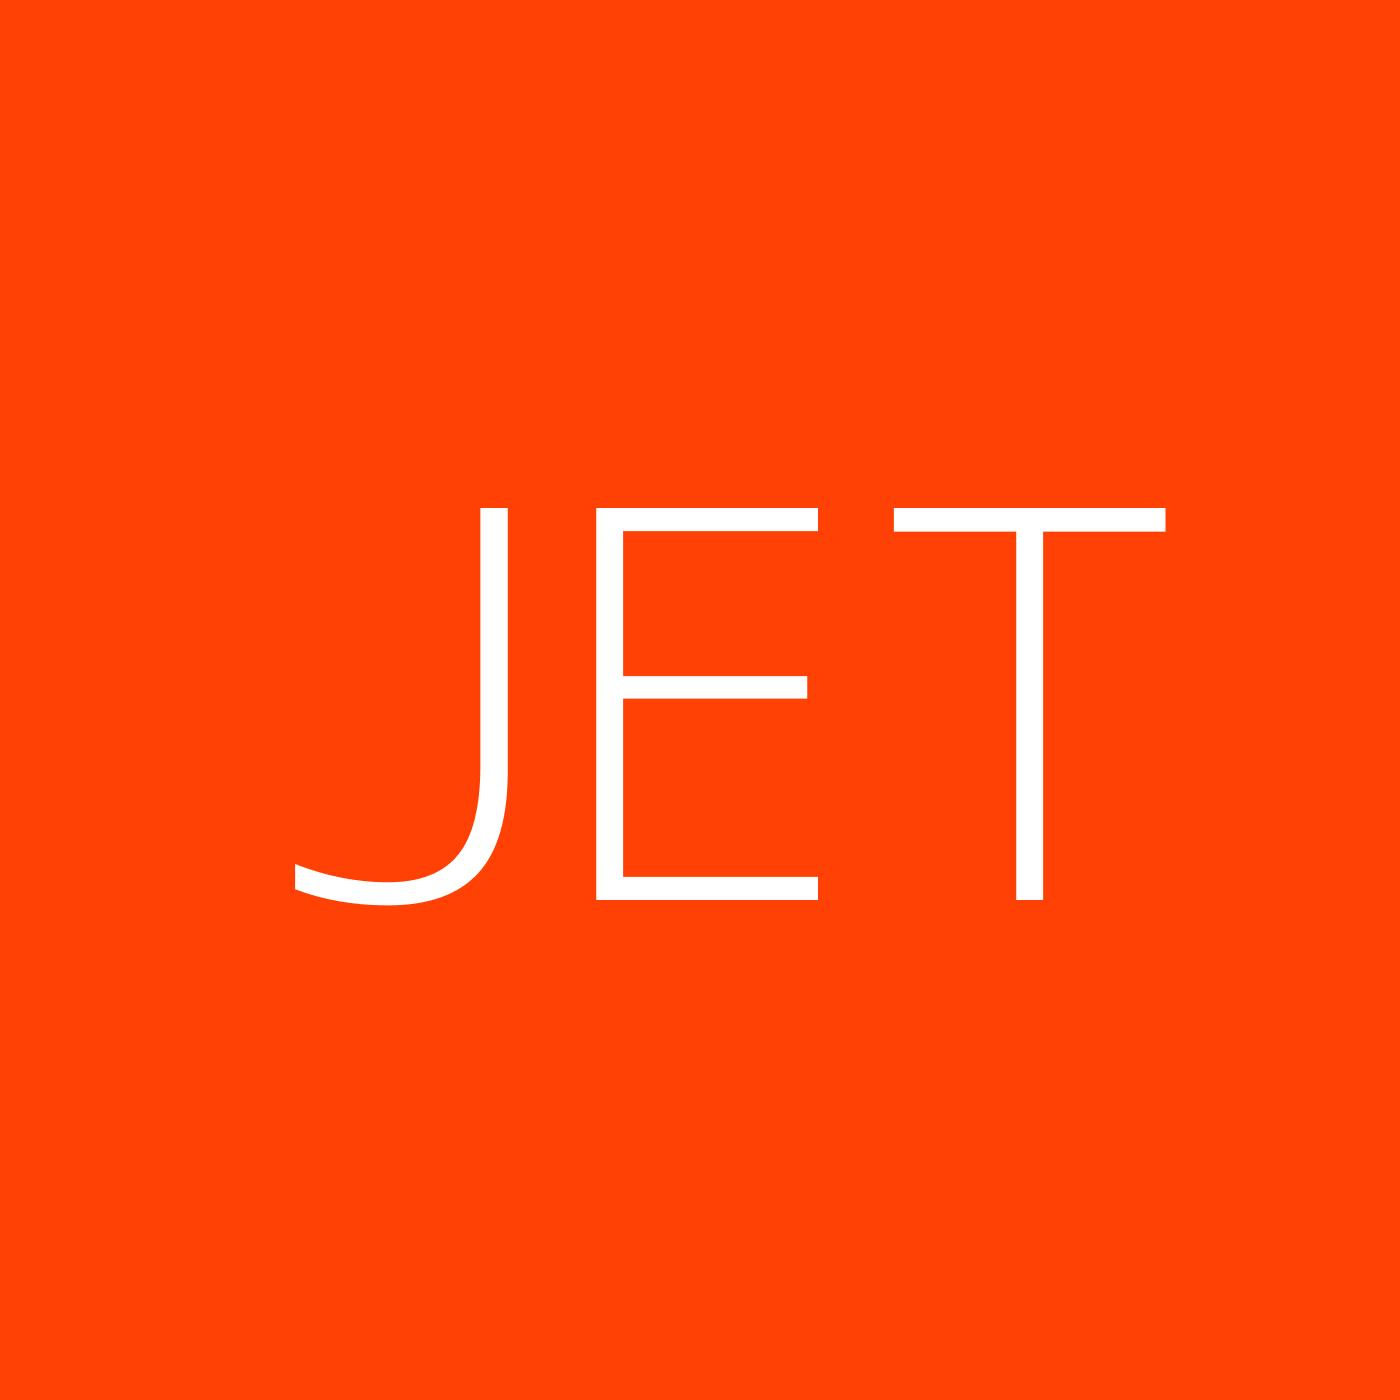 Jet Playlist Artwork